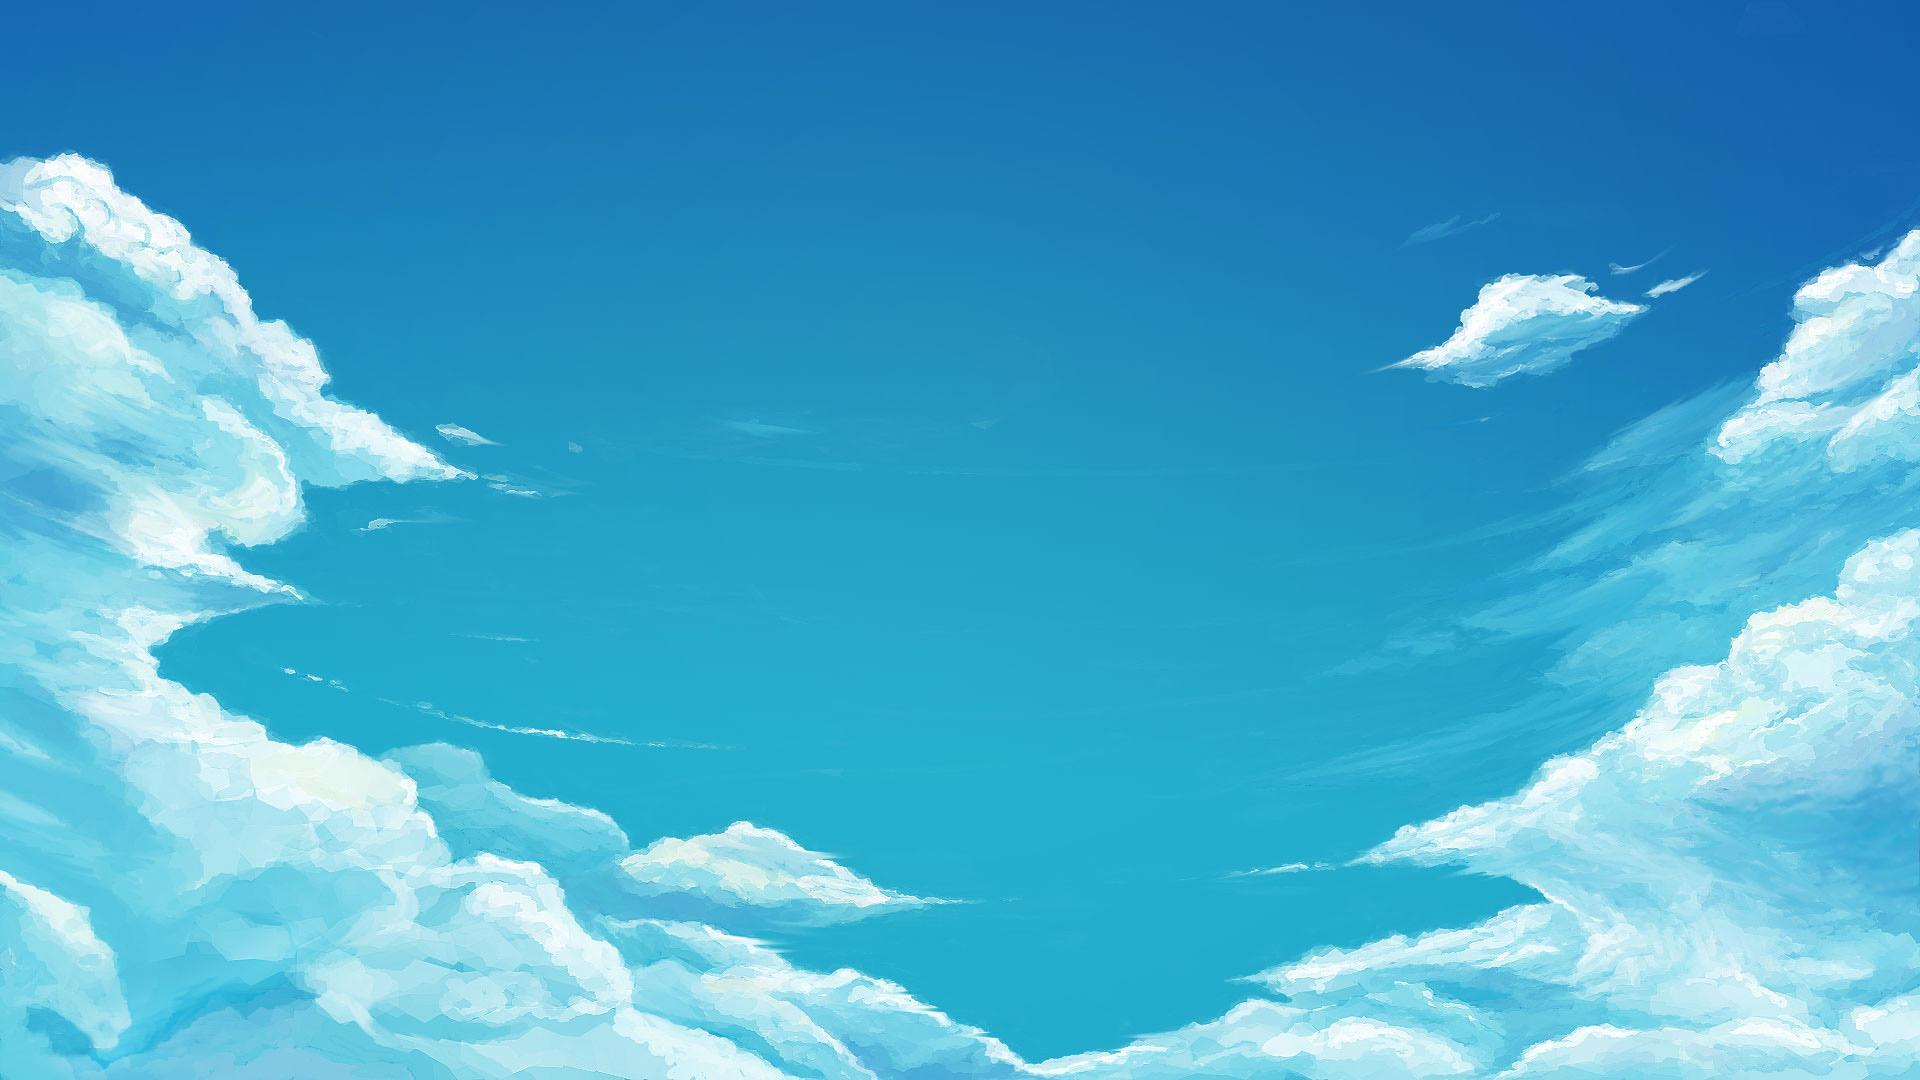 Blue Skies HD Wallpapers